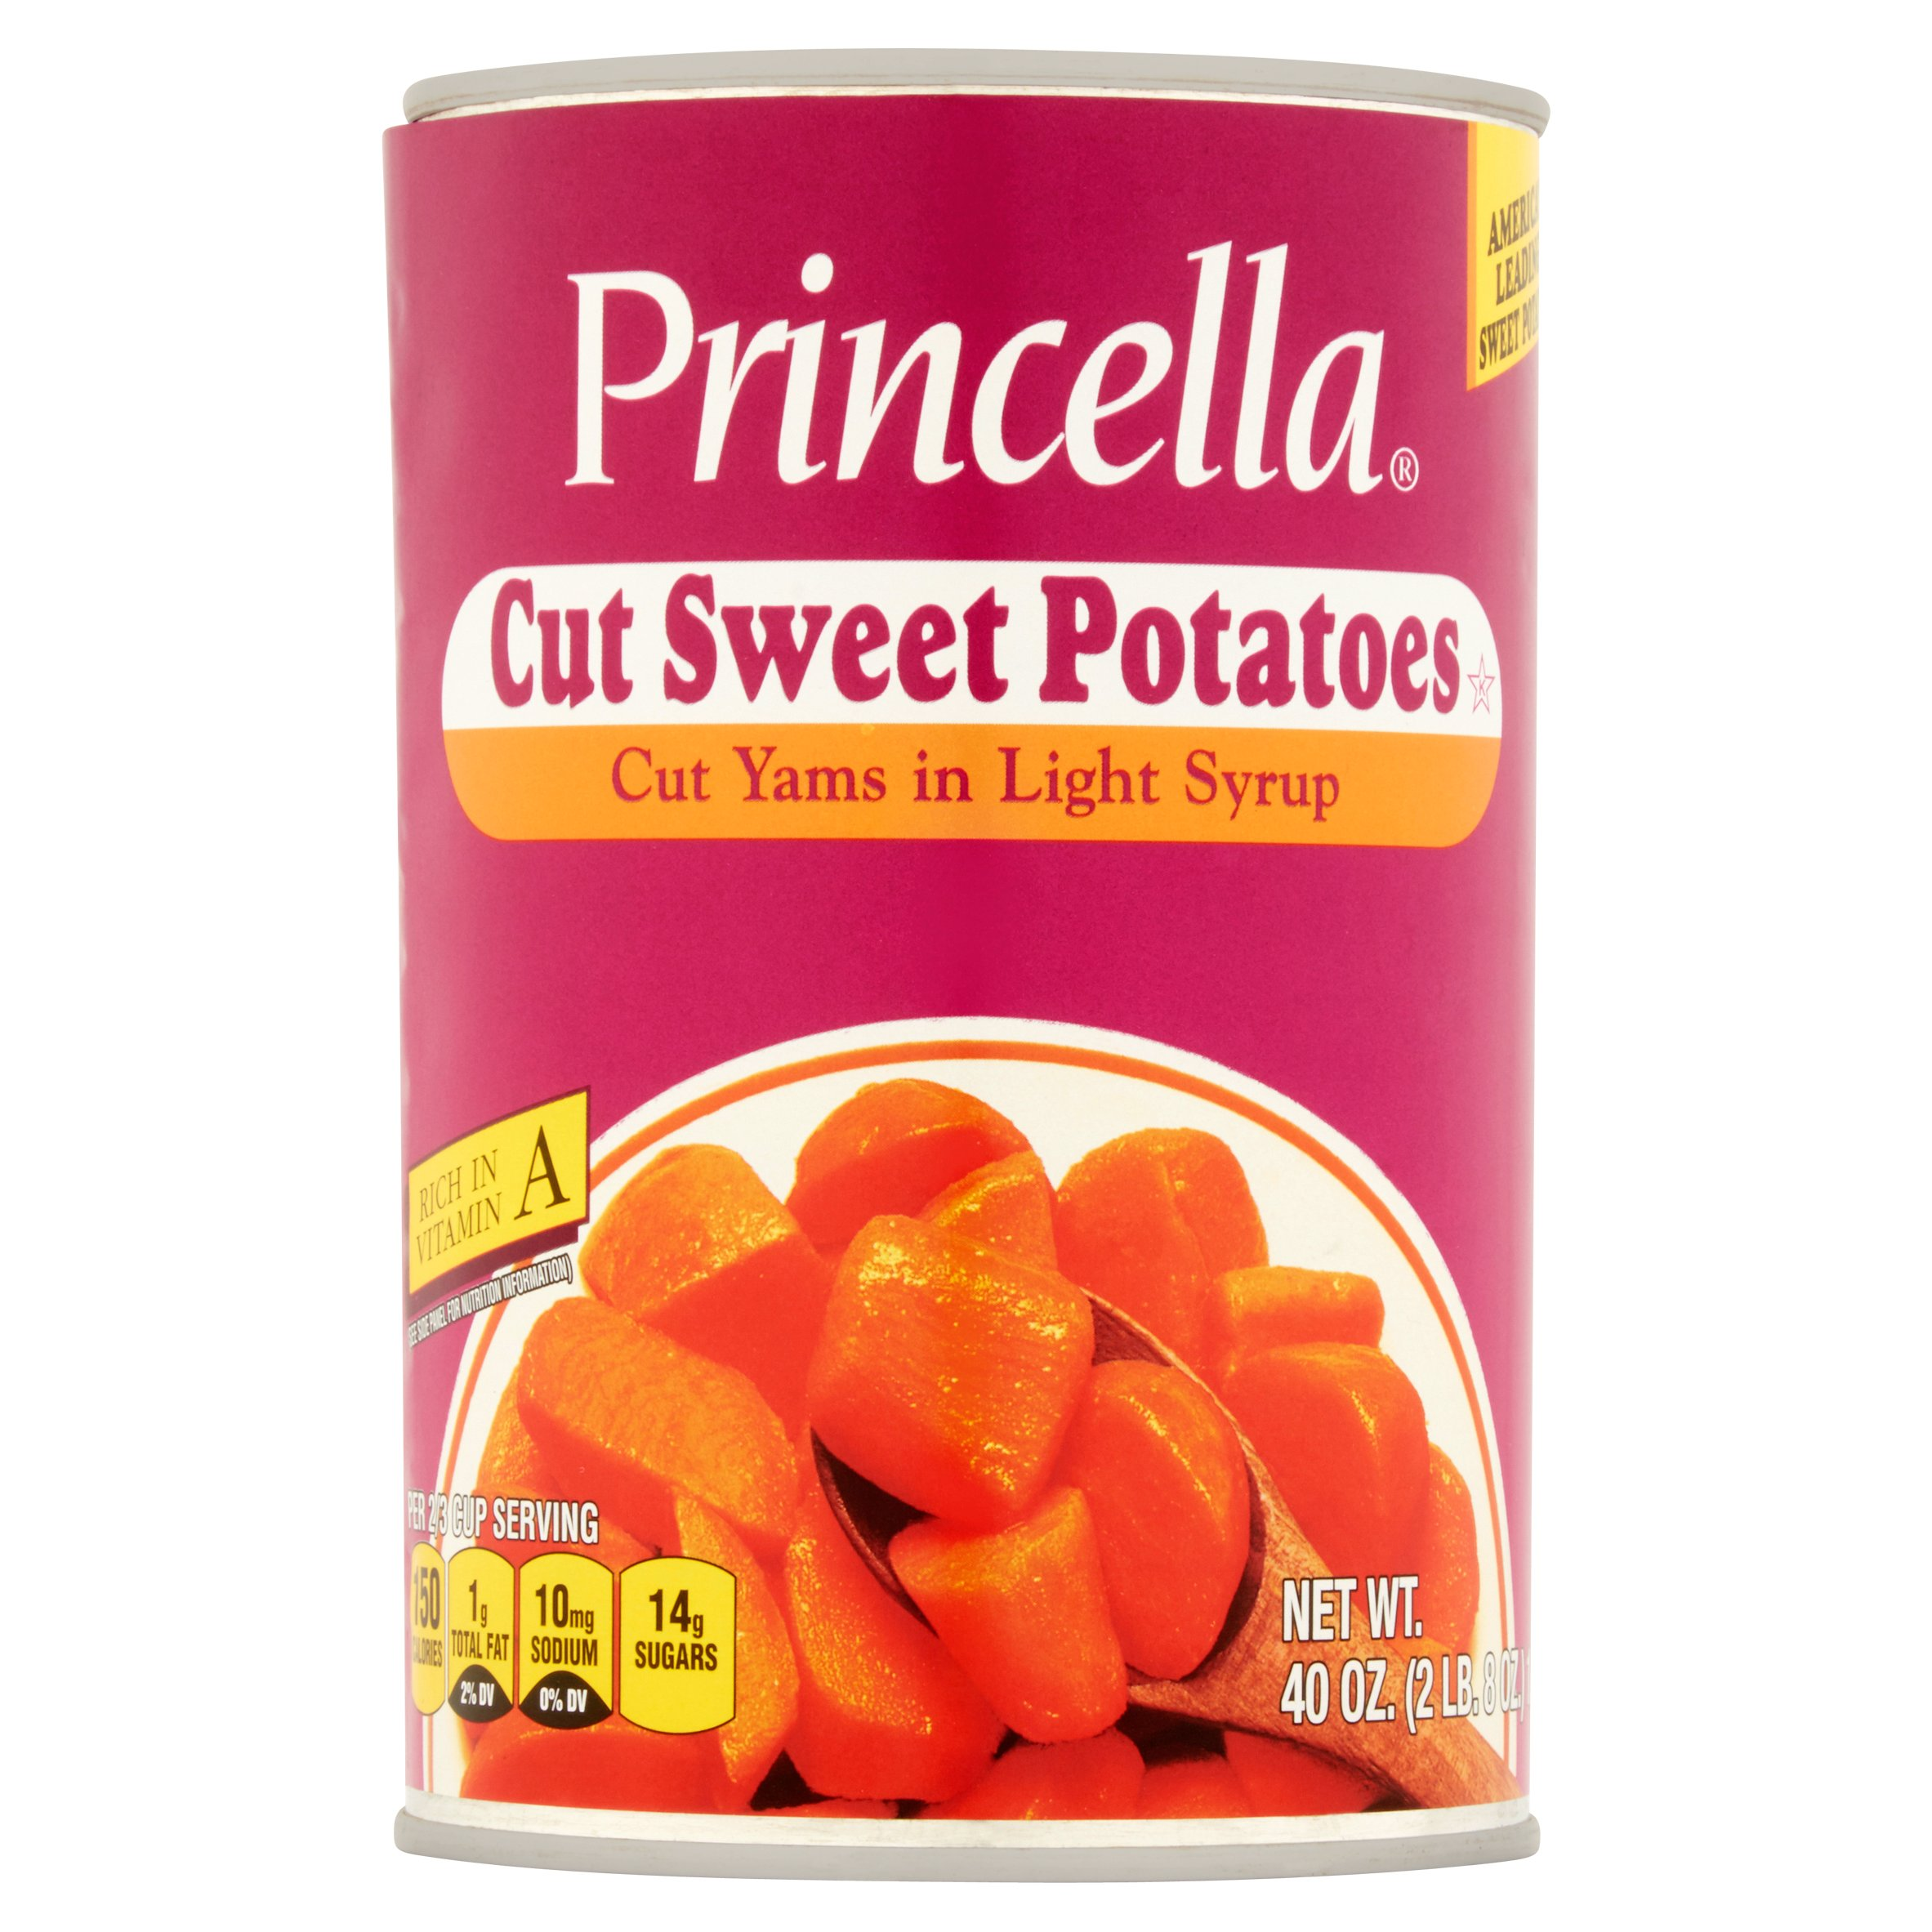 Princella Cut Sweet Potatoes Cut Yams In Light Syrup, 40 Oz